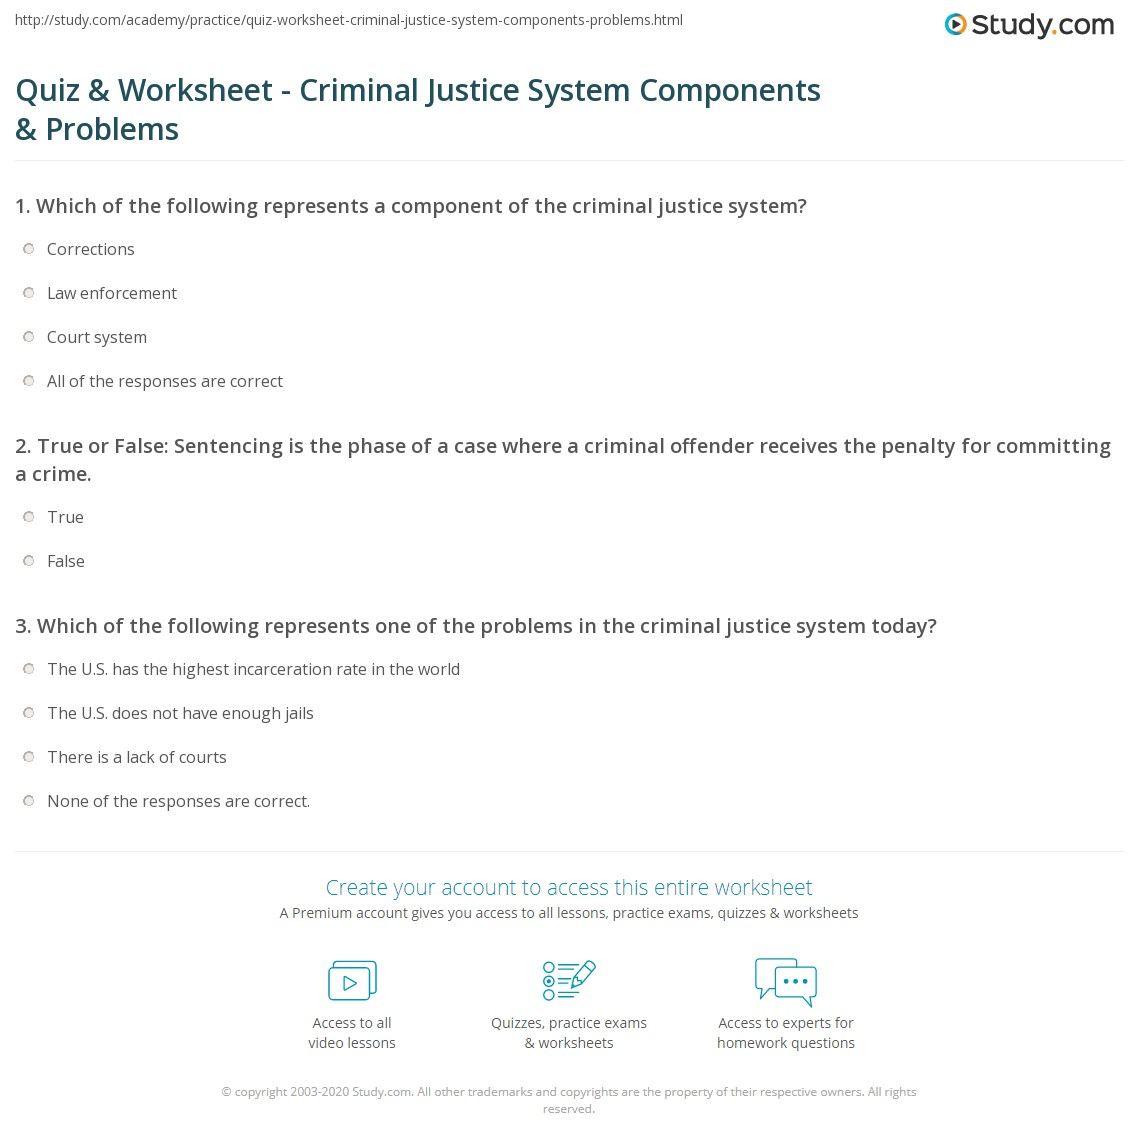 Worksheets Criminal Thinking Worksheets quiz worksheet criminal justice system components problems print what is the definition worksheet